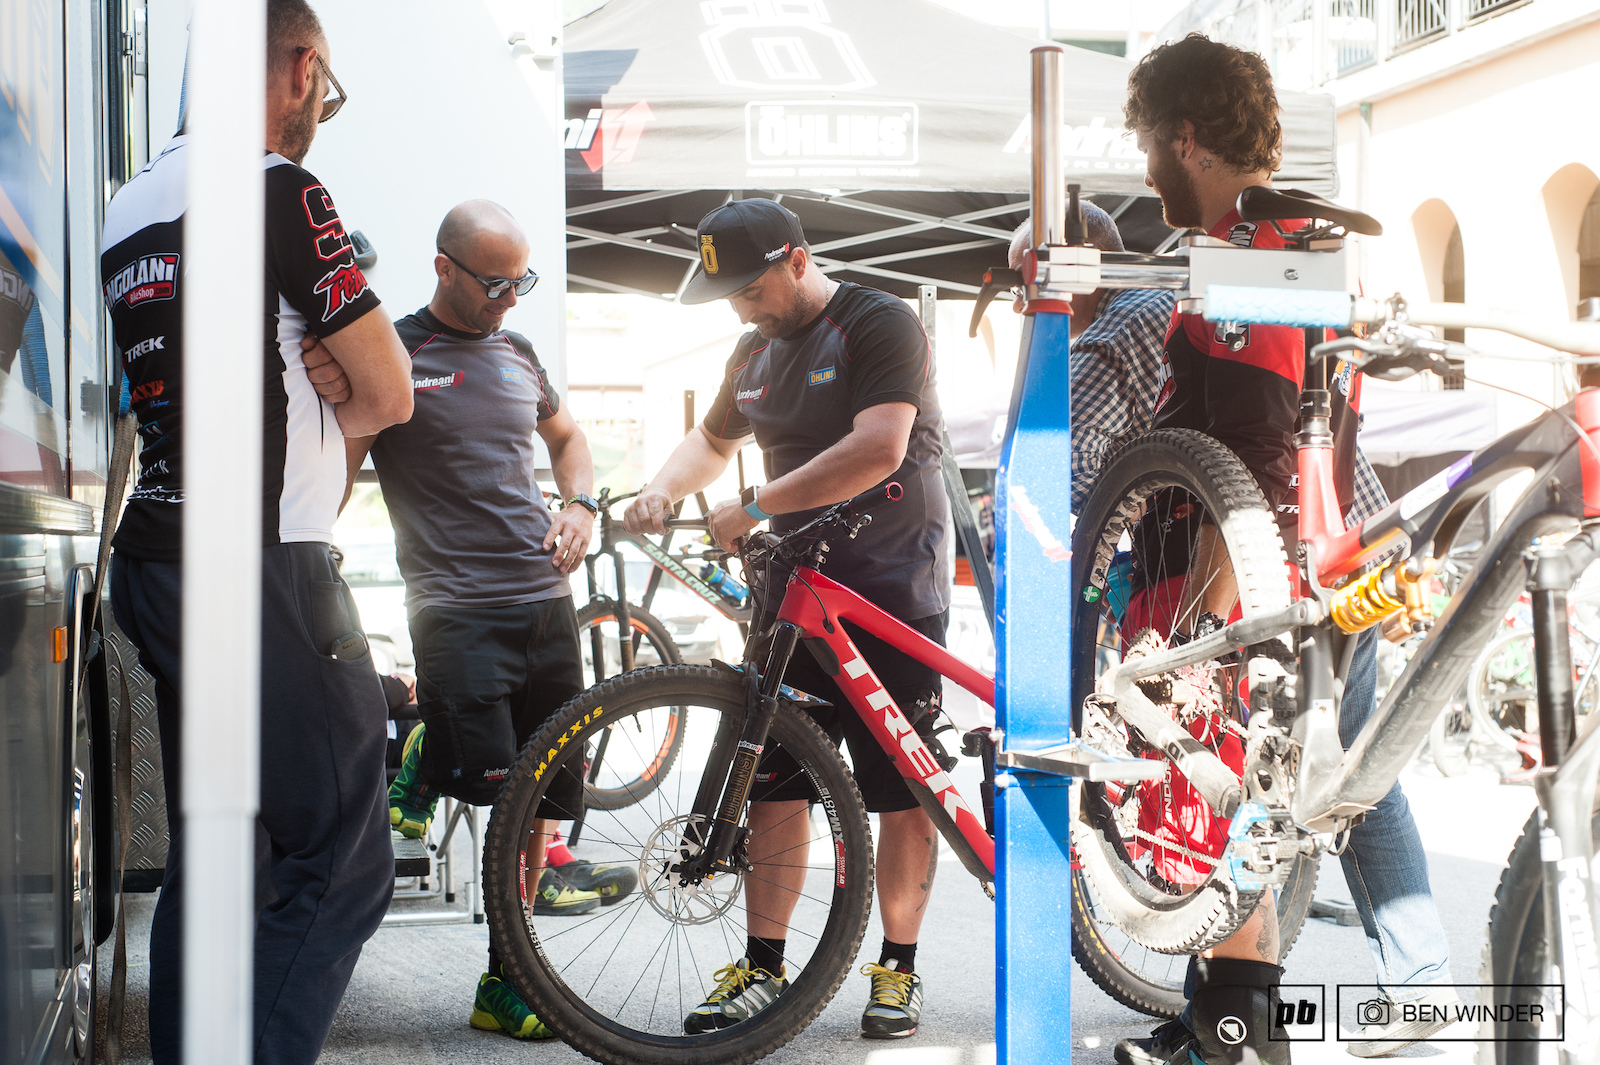 But of course there s a mountain bike race going on Alex Lupato setting up his forks with the Andreani guys.